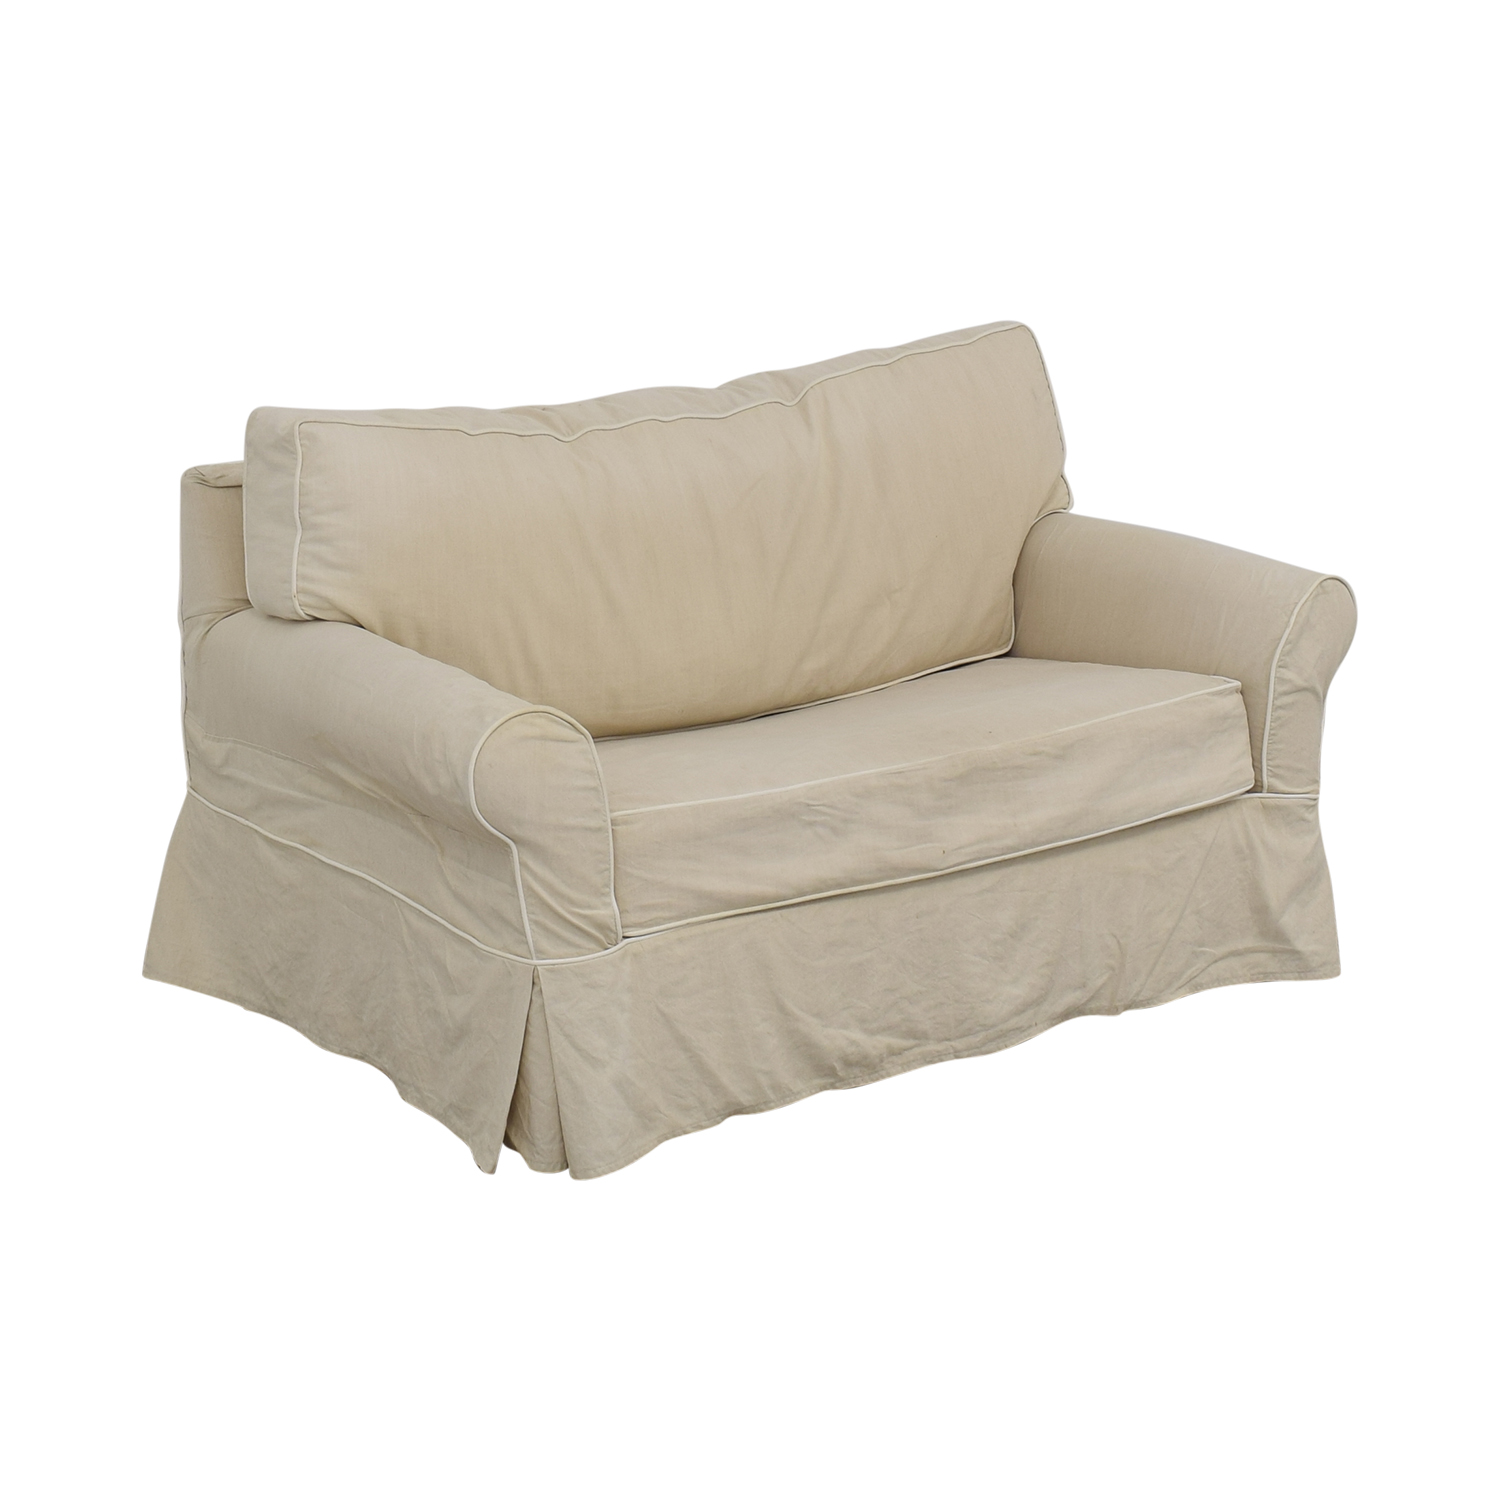 Crate & Barrel Crate & Barrel Rolled Arm Loveseat Twin Sleeper price